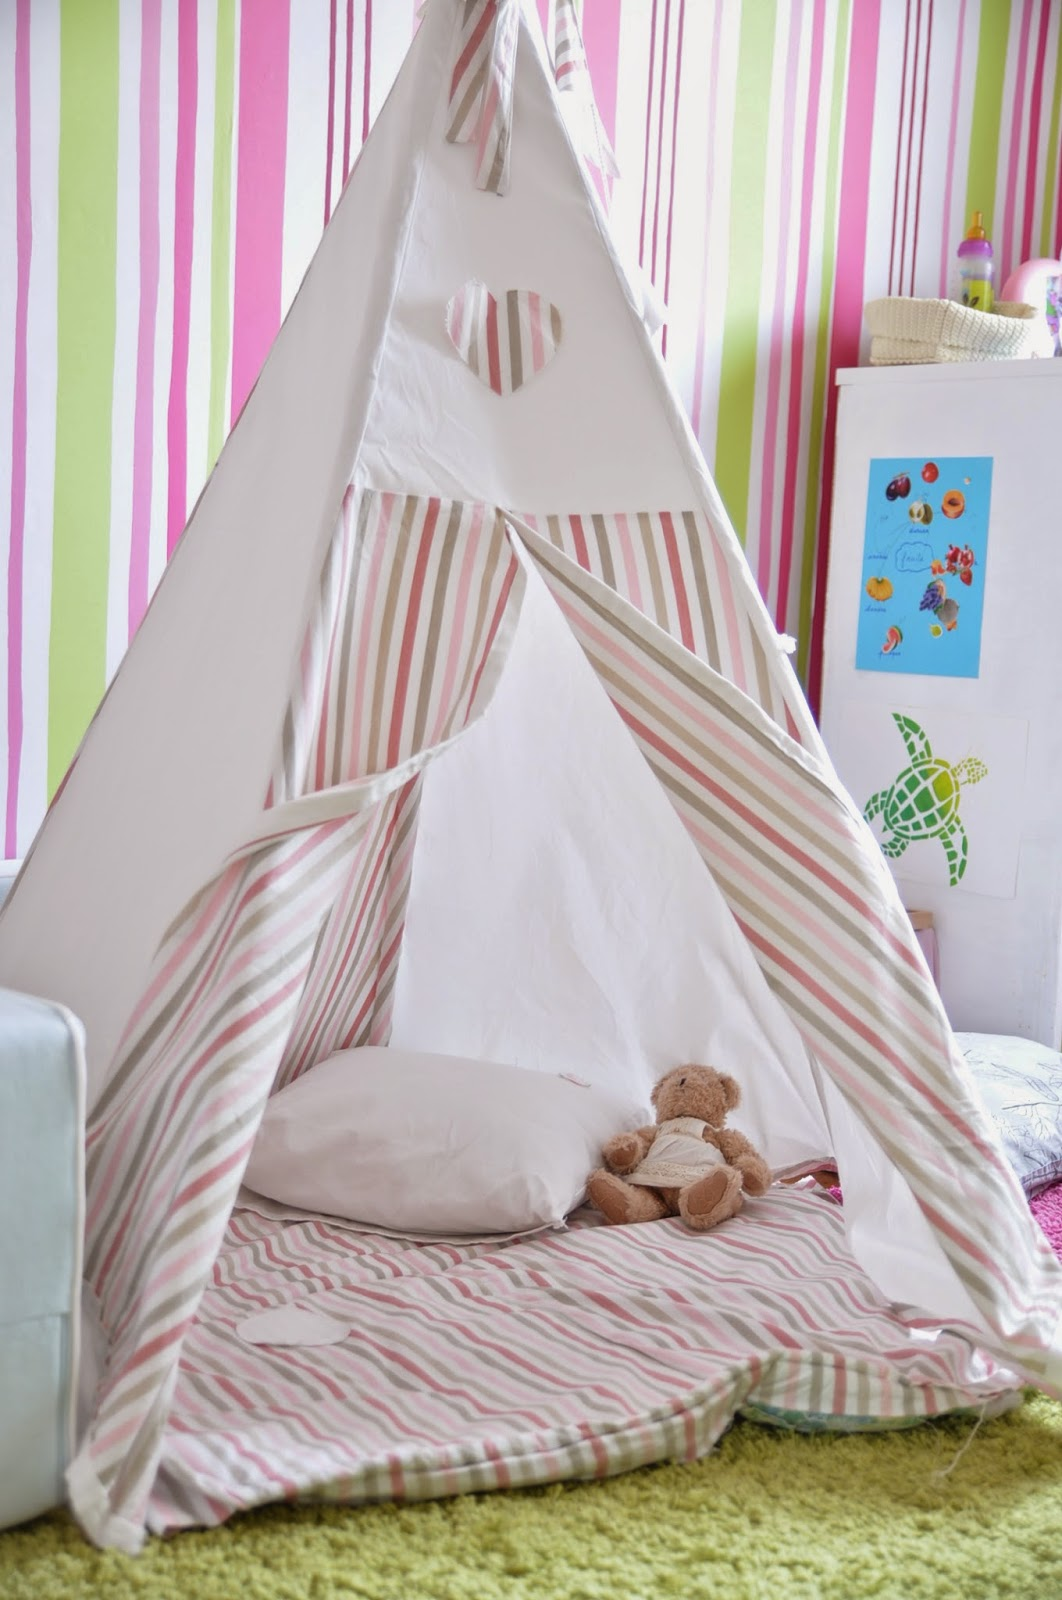 fabriquer un tipi exterieur beautiful tipi exterieur location de vacances roulotte a taden tipi. Black Bedroom Furniture Sets. Home Design Ideas